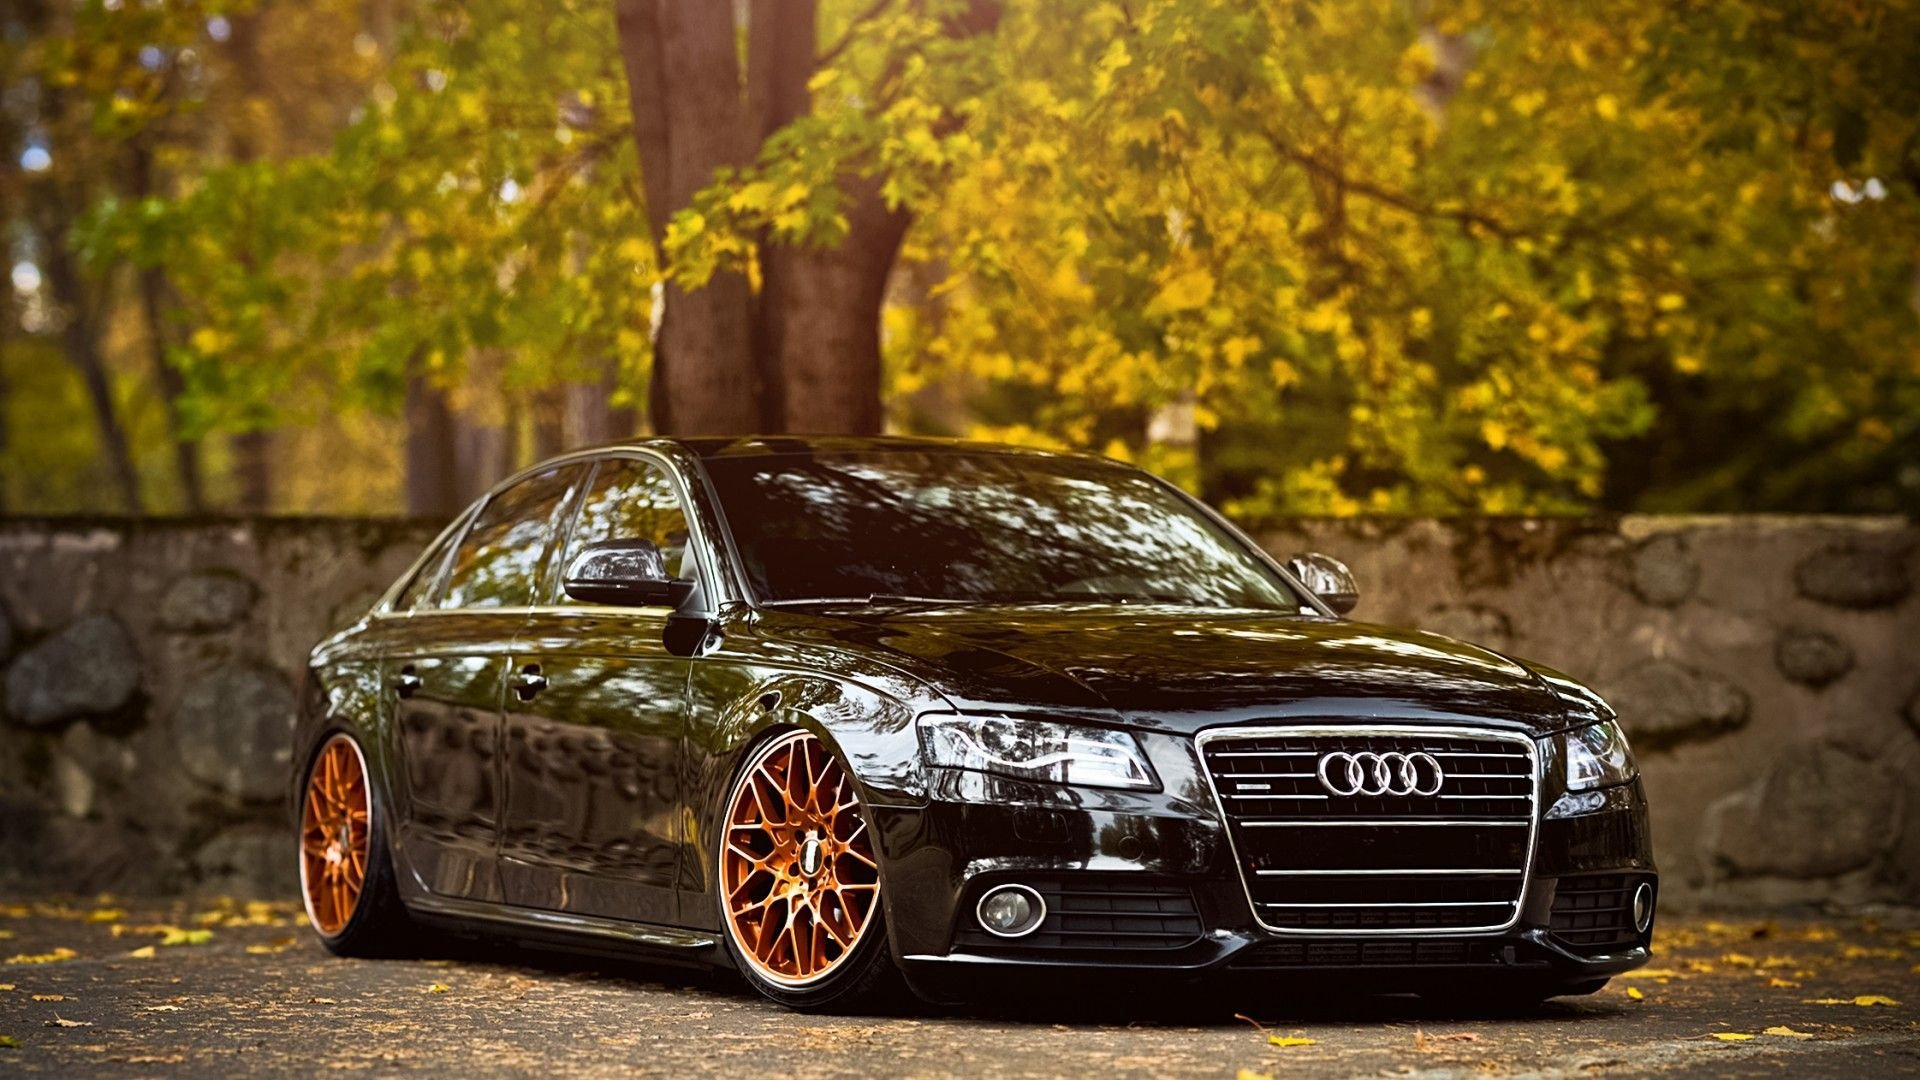 Latest Black Car Copper Wheels Cars Car Wallpapers Audi Free Download